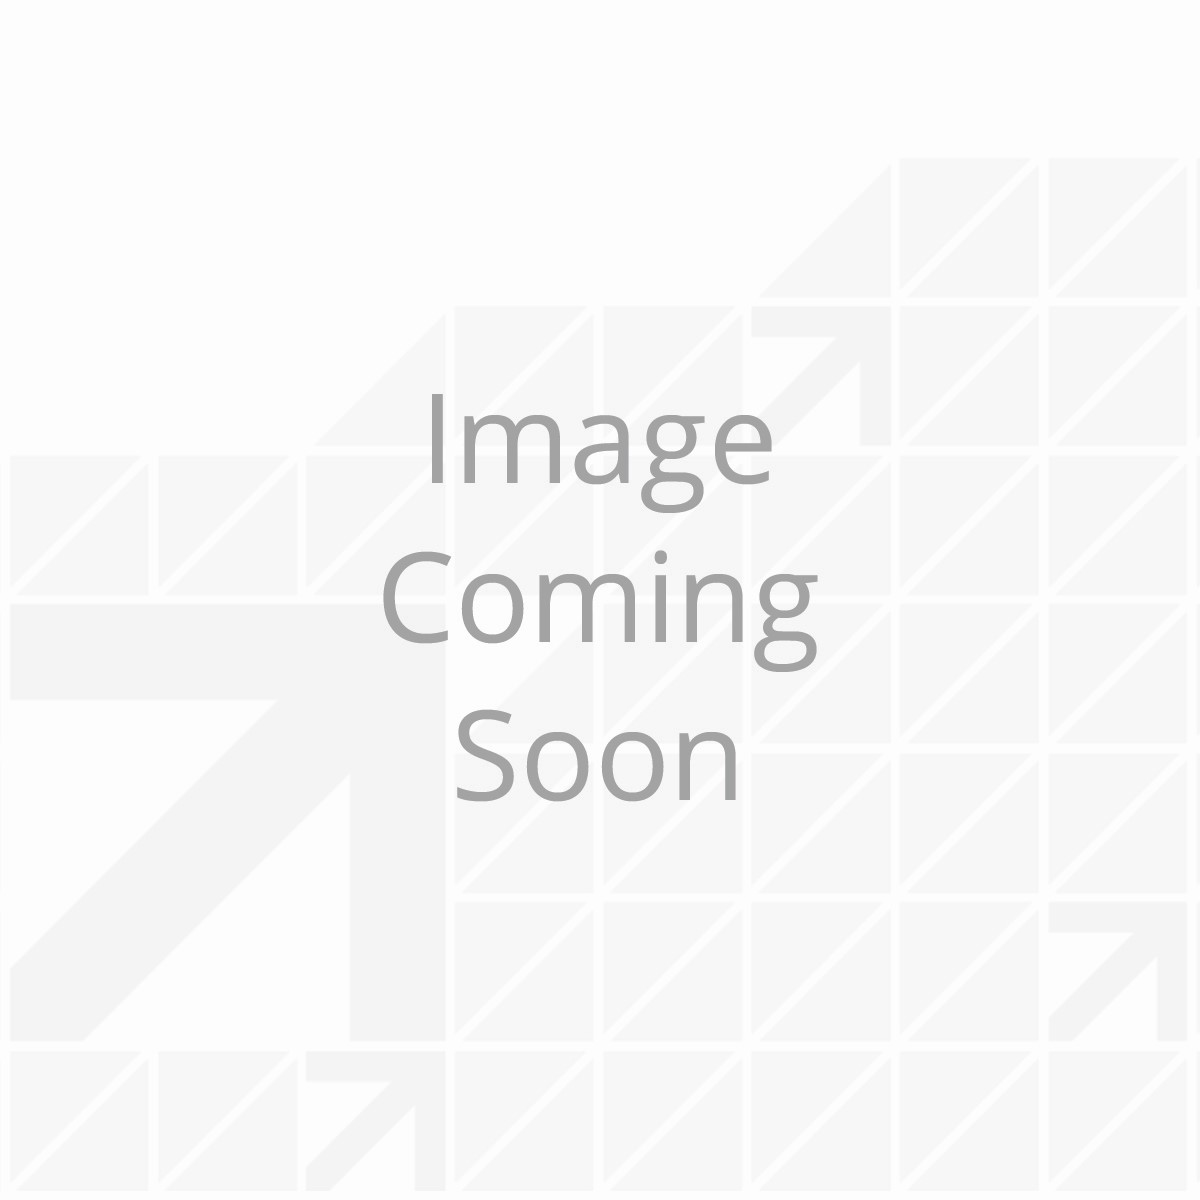 Equa-Flex® Rubberized Equalizer - Tandem Axle Kit, Wide-Stance 3,500 to 5,200 lbs.